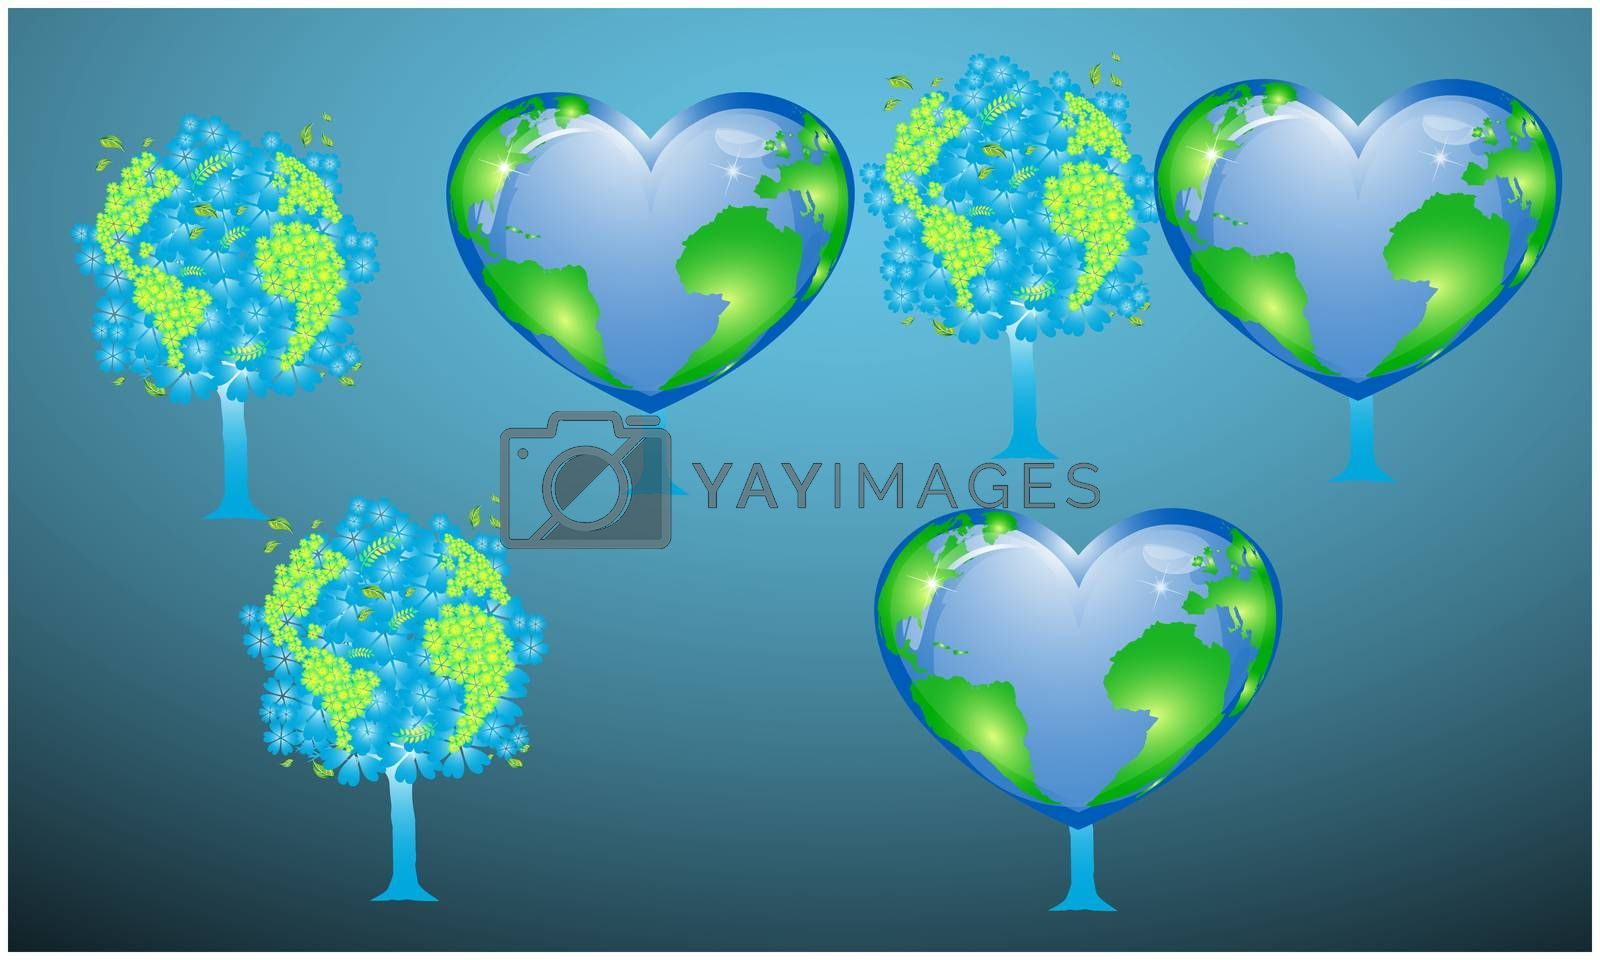 digital textile design of tree and globe on abstract backgrounds